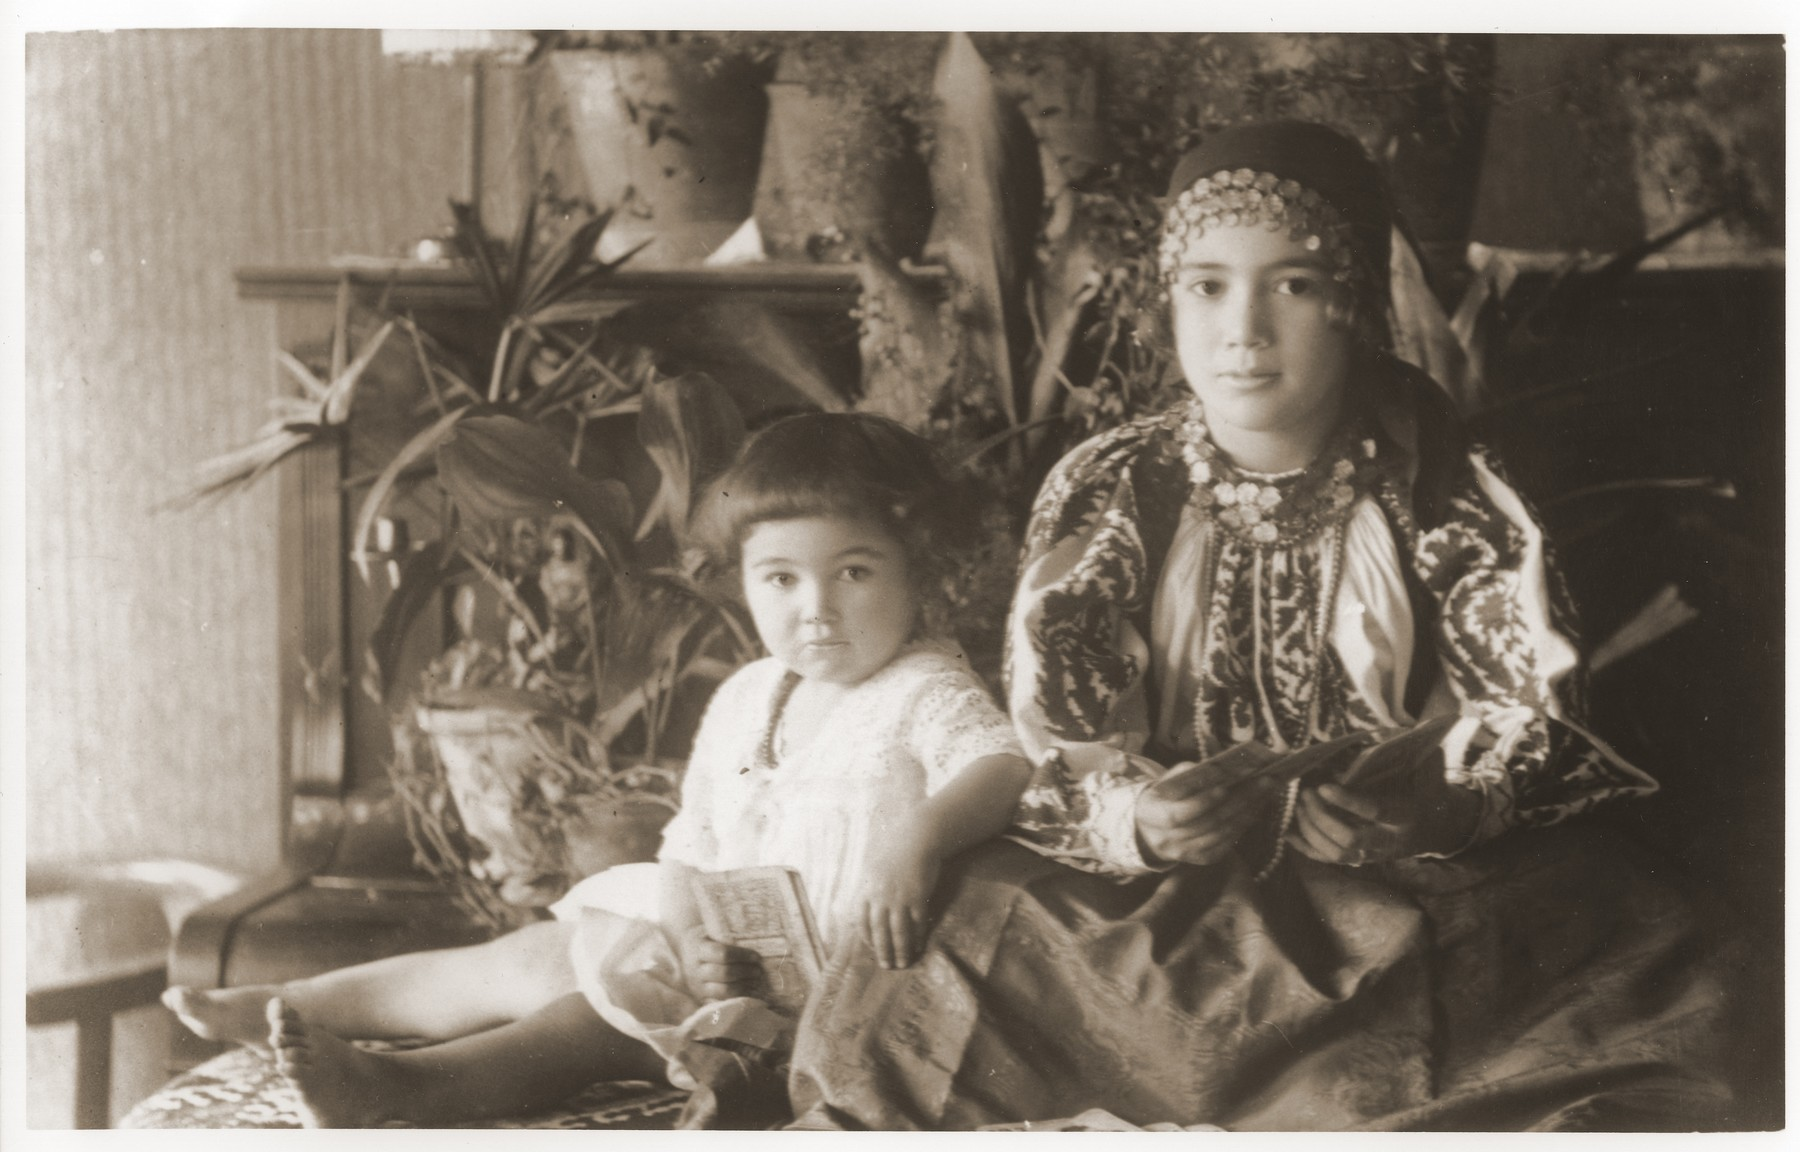 Two Jewish sisters pose at their home in Novi Knezevac, Yugoslavia.  Pictured are Magda and Olga Schiller, the cousins of the donor, Ivan Singer.